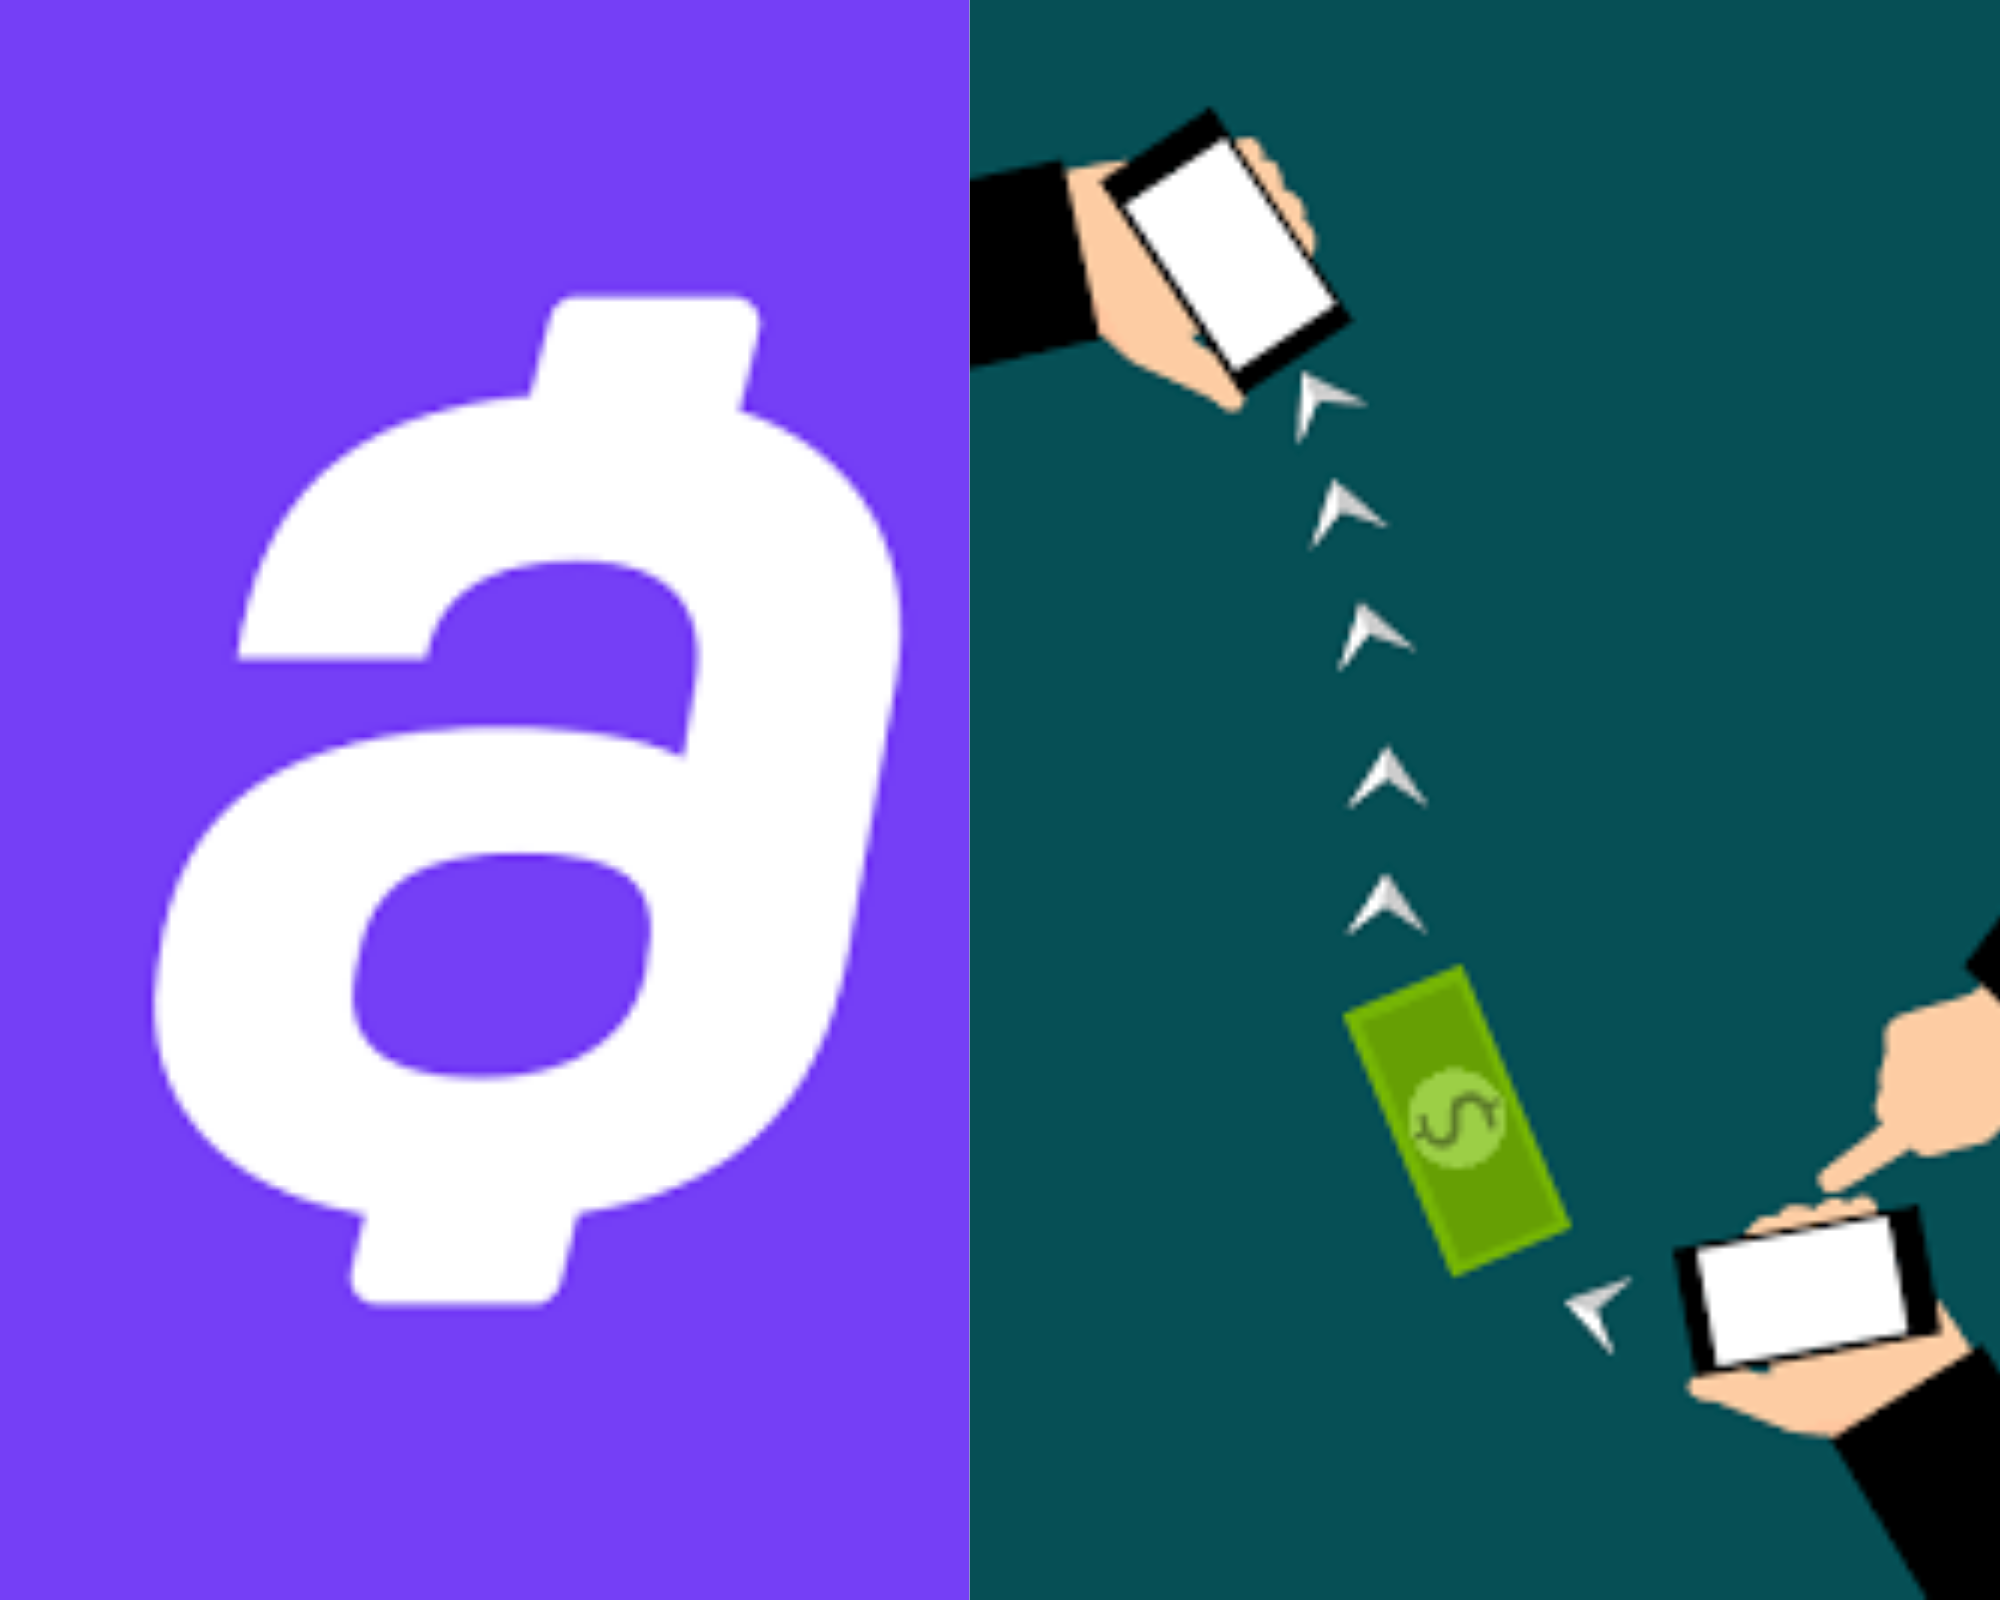 What is abeg app all about?